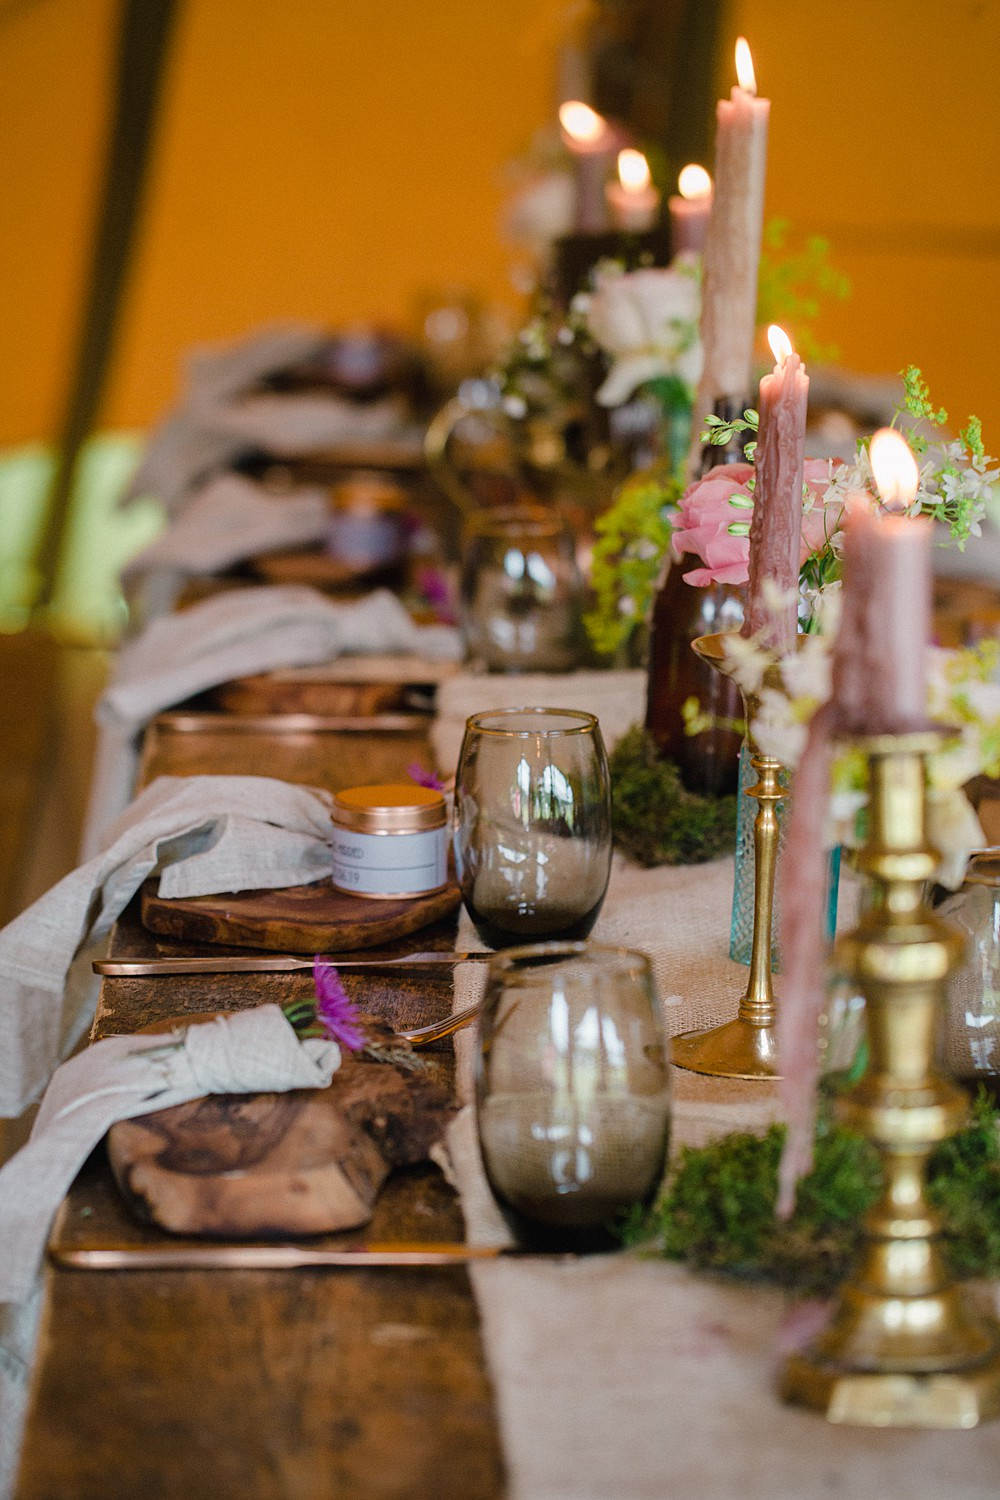 Table Tablescape Decor Decoration Candles Bottle Flowers Pet Wedding Ideas Vicky Plum Photography